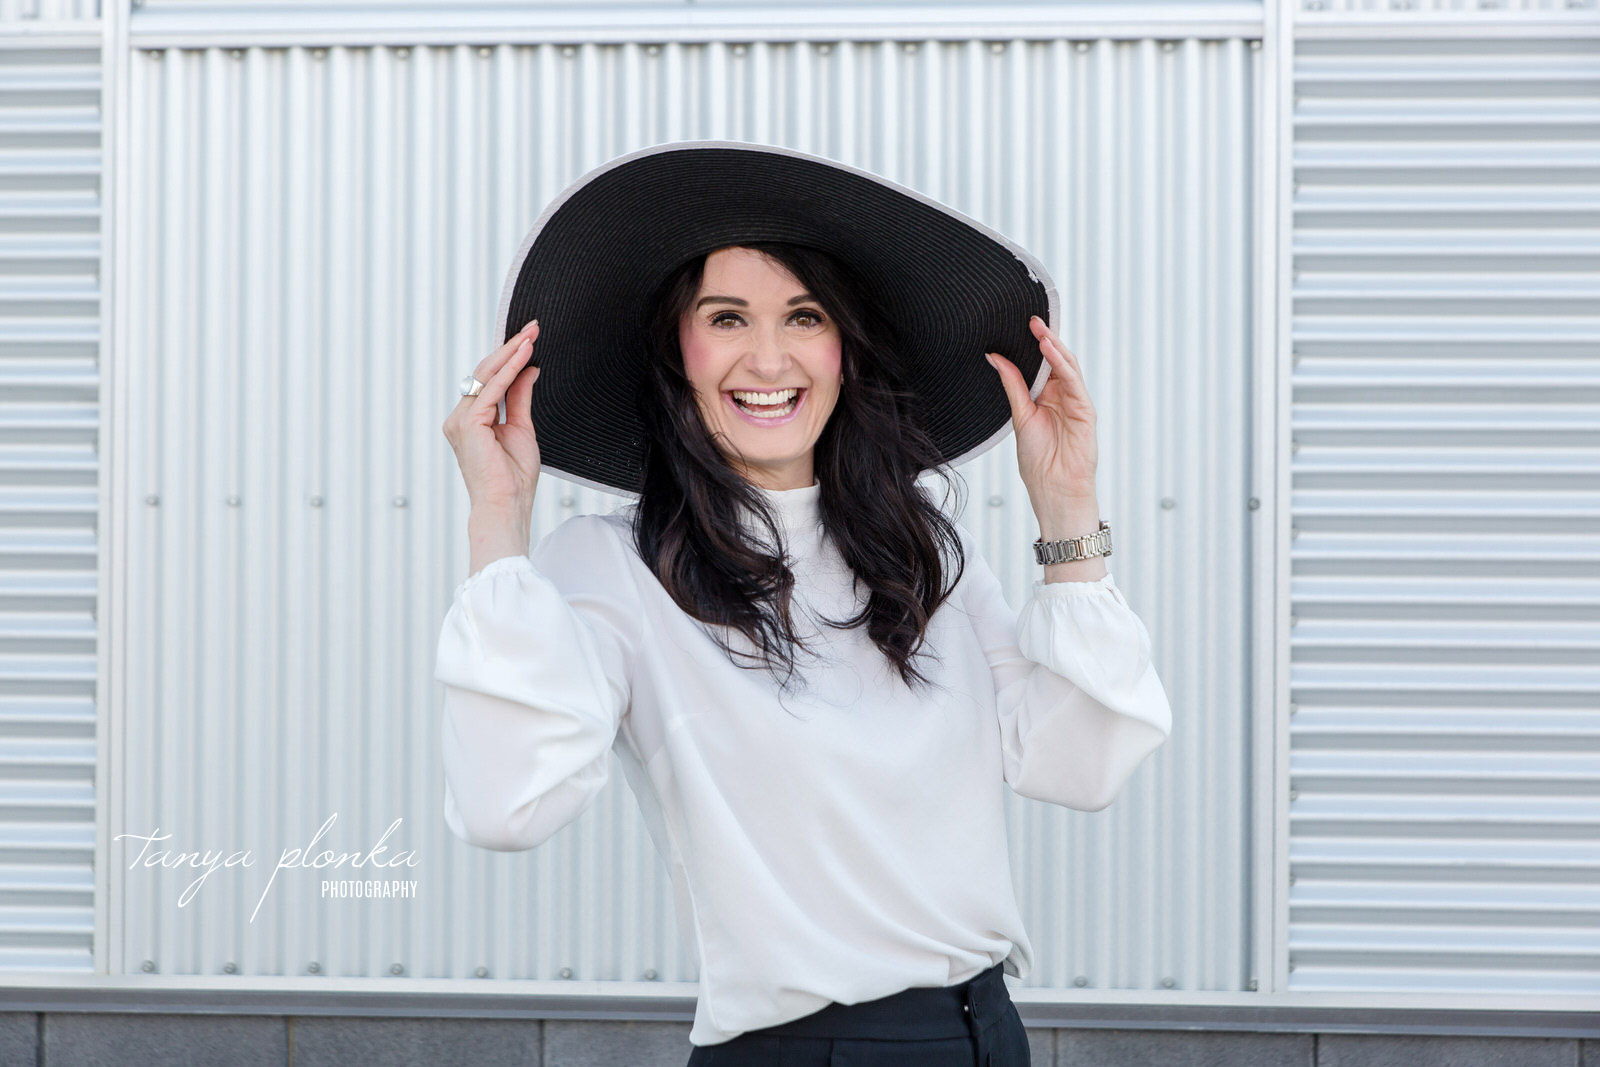 Woman in wide brimmed hat laughing